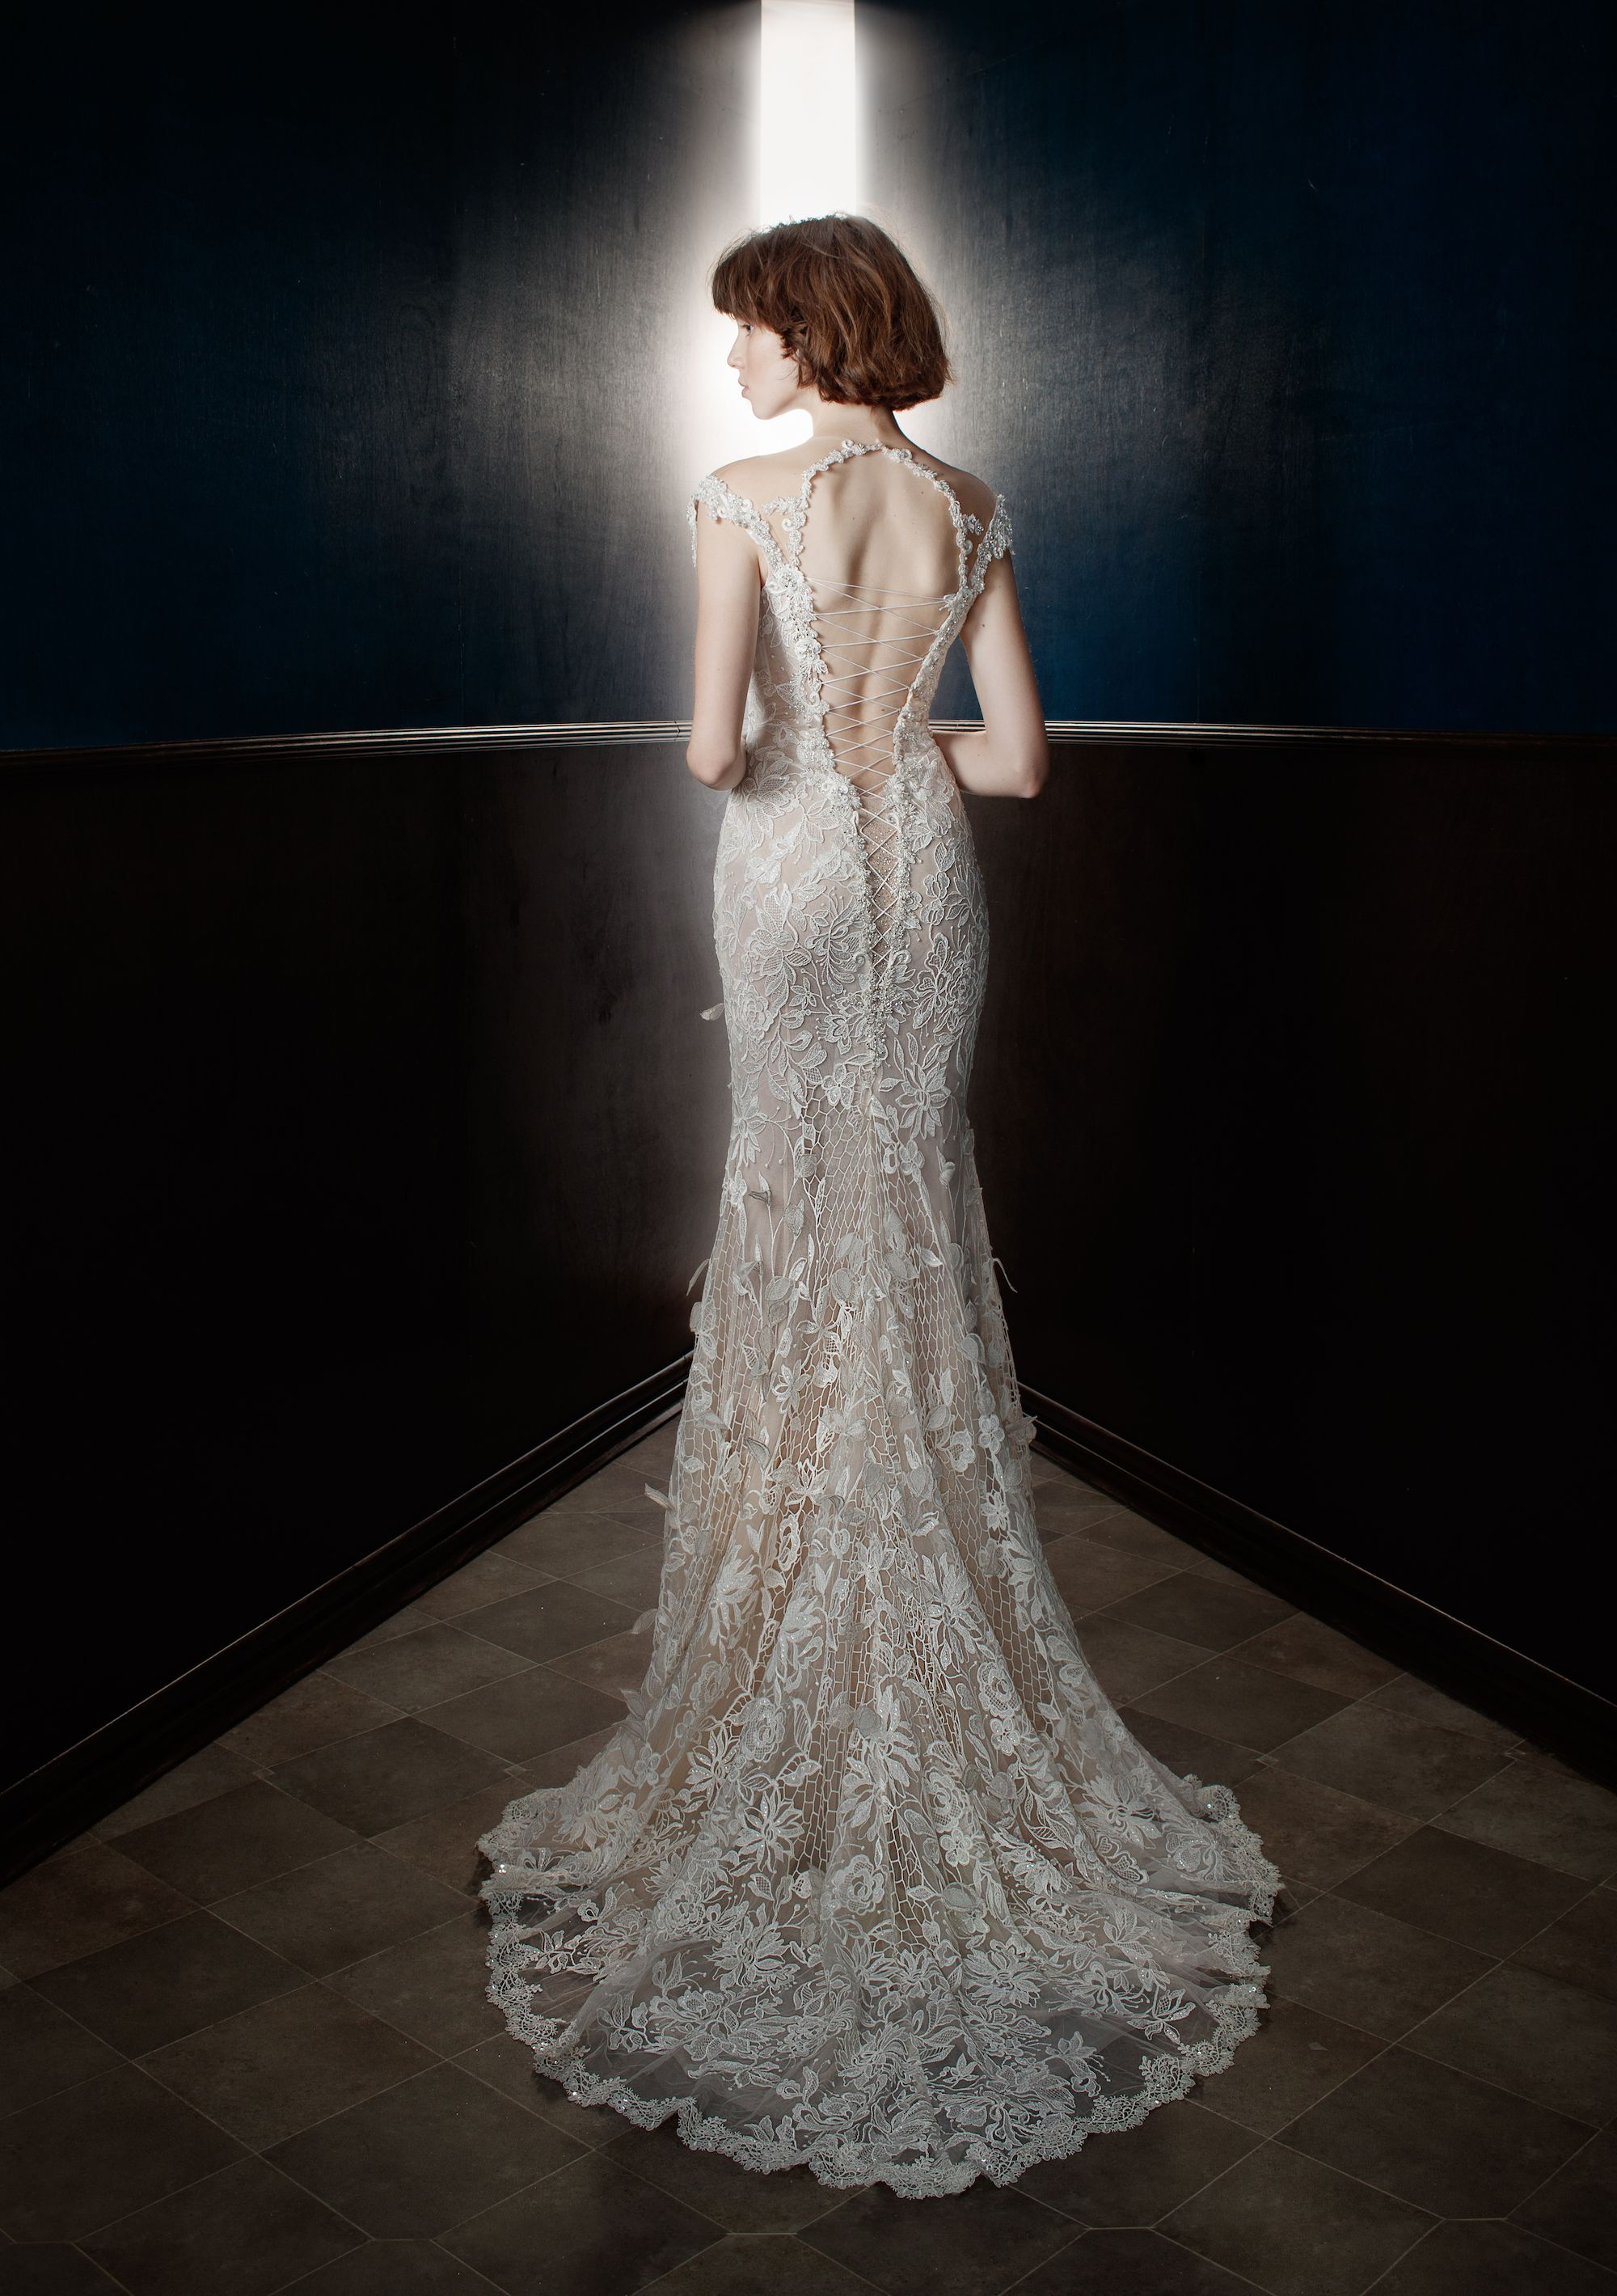 Galia lahav haute couture spring bridal week gown